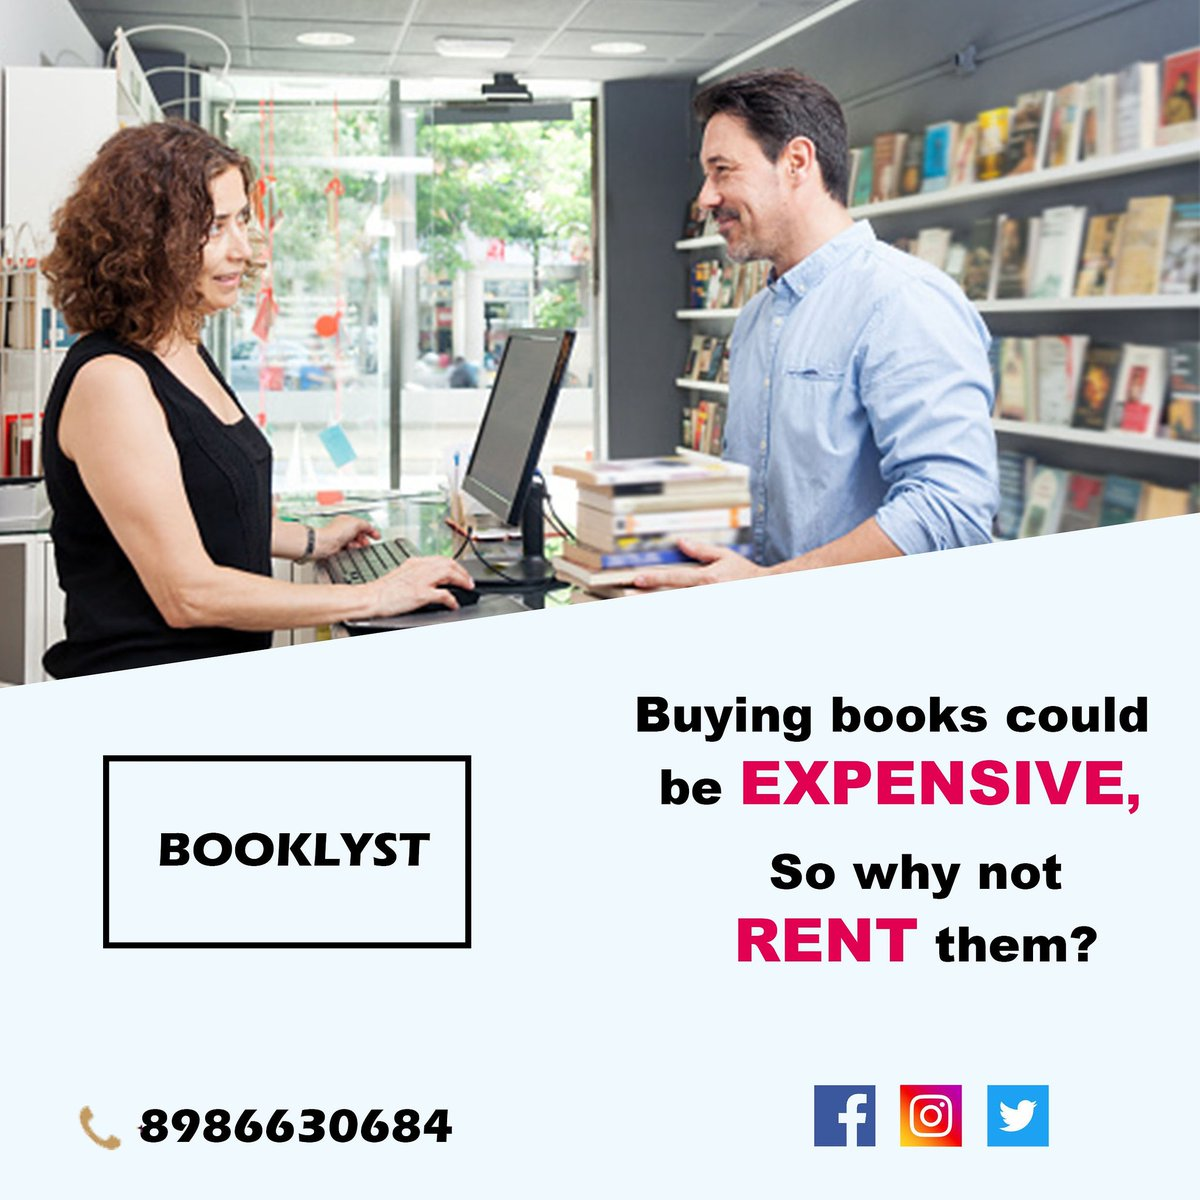 Why buy books when you can rent them....   #jamshedpur #jamshedpurians #jamshedpur_tiktokstars  #jamshedpurdiaries #jamshedpur_diaries #tuesday #tuesdaymotivation #tuesdayvibes #bookstagrammer https://www.instagram.com/p/B91dsX9h9Pi/?igshid=1ex3n639r4kzl …pic.twitter.com/90nlhQ6BuK